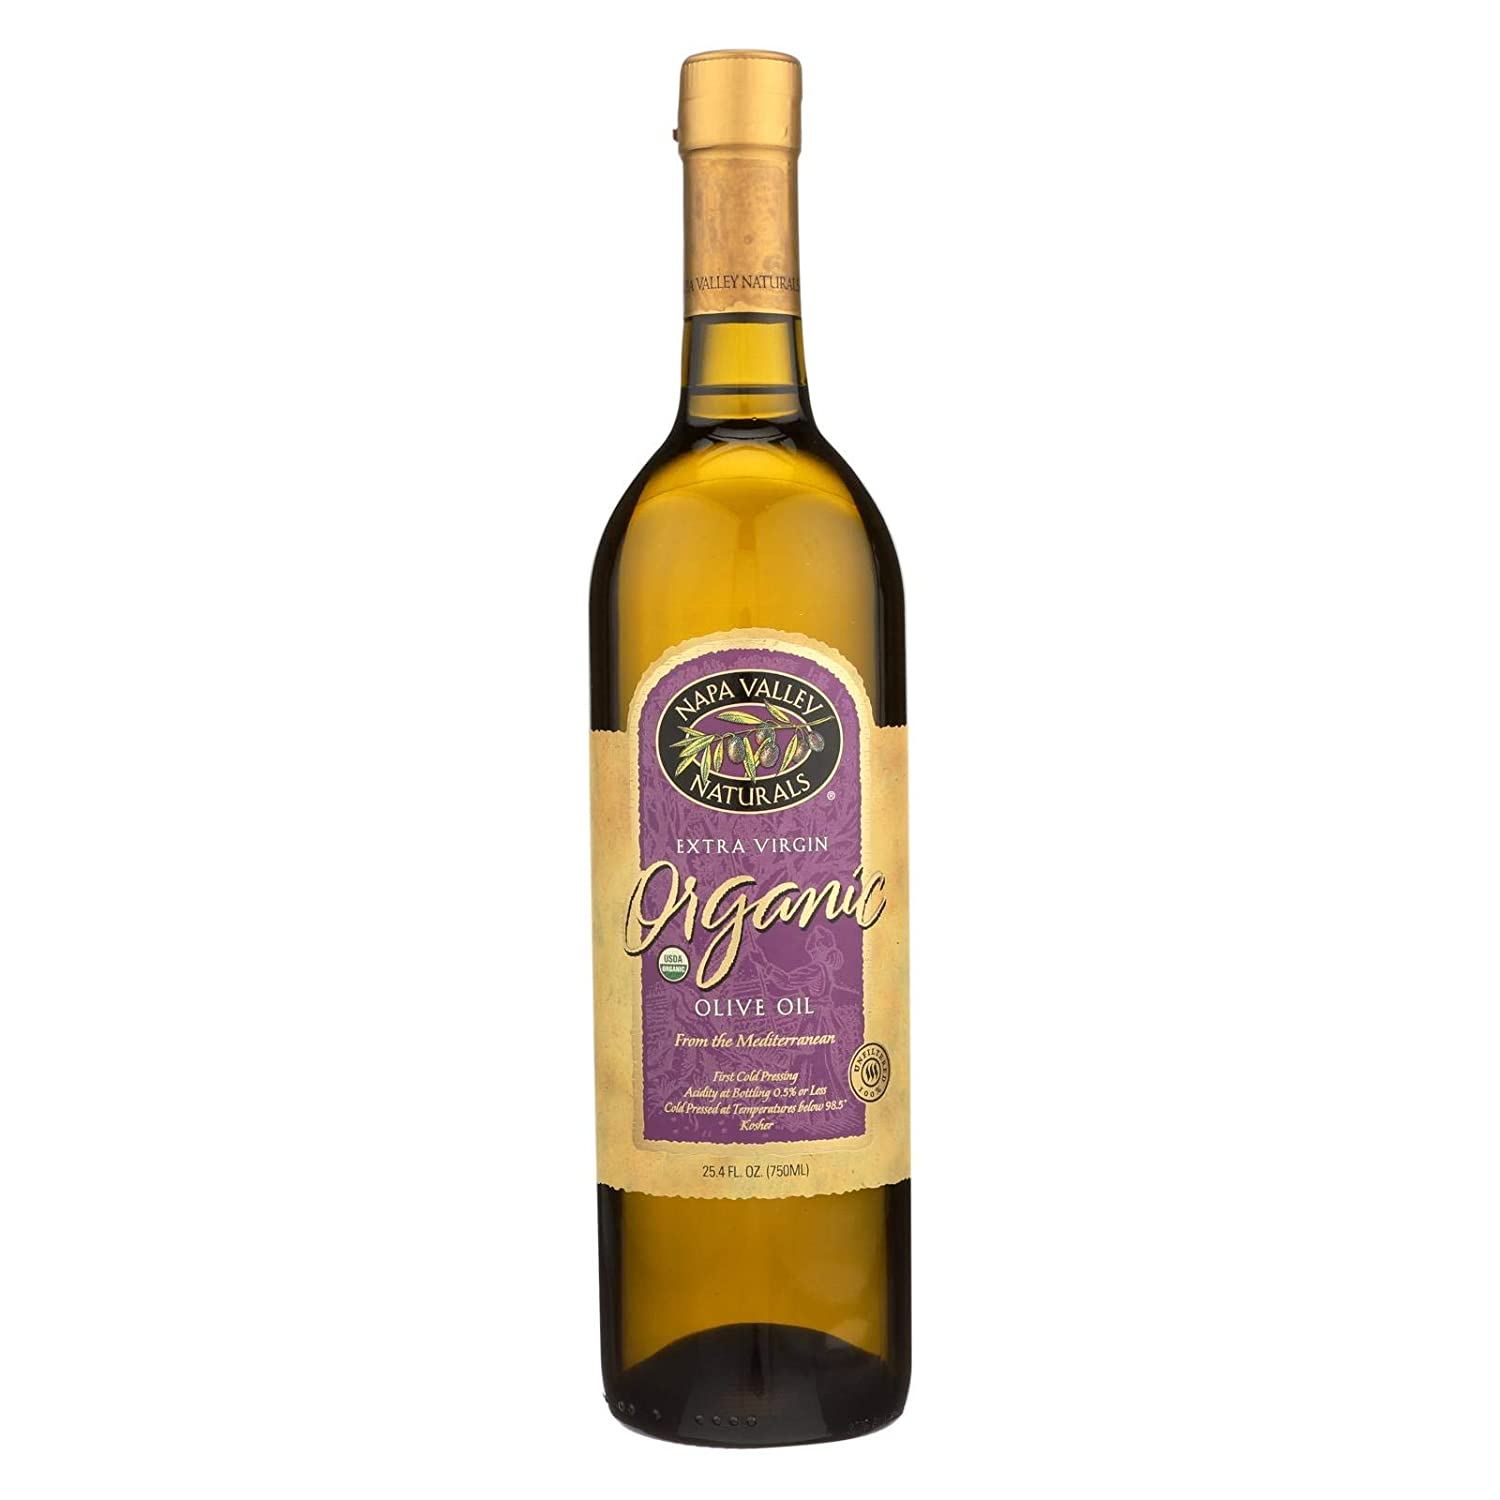 Napa Valley Naturals Organic Extra Fixed price for sale Year-end annual account Oil Olive 12x25.4oz Virgin